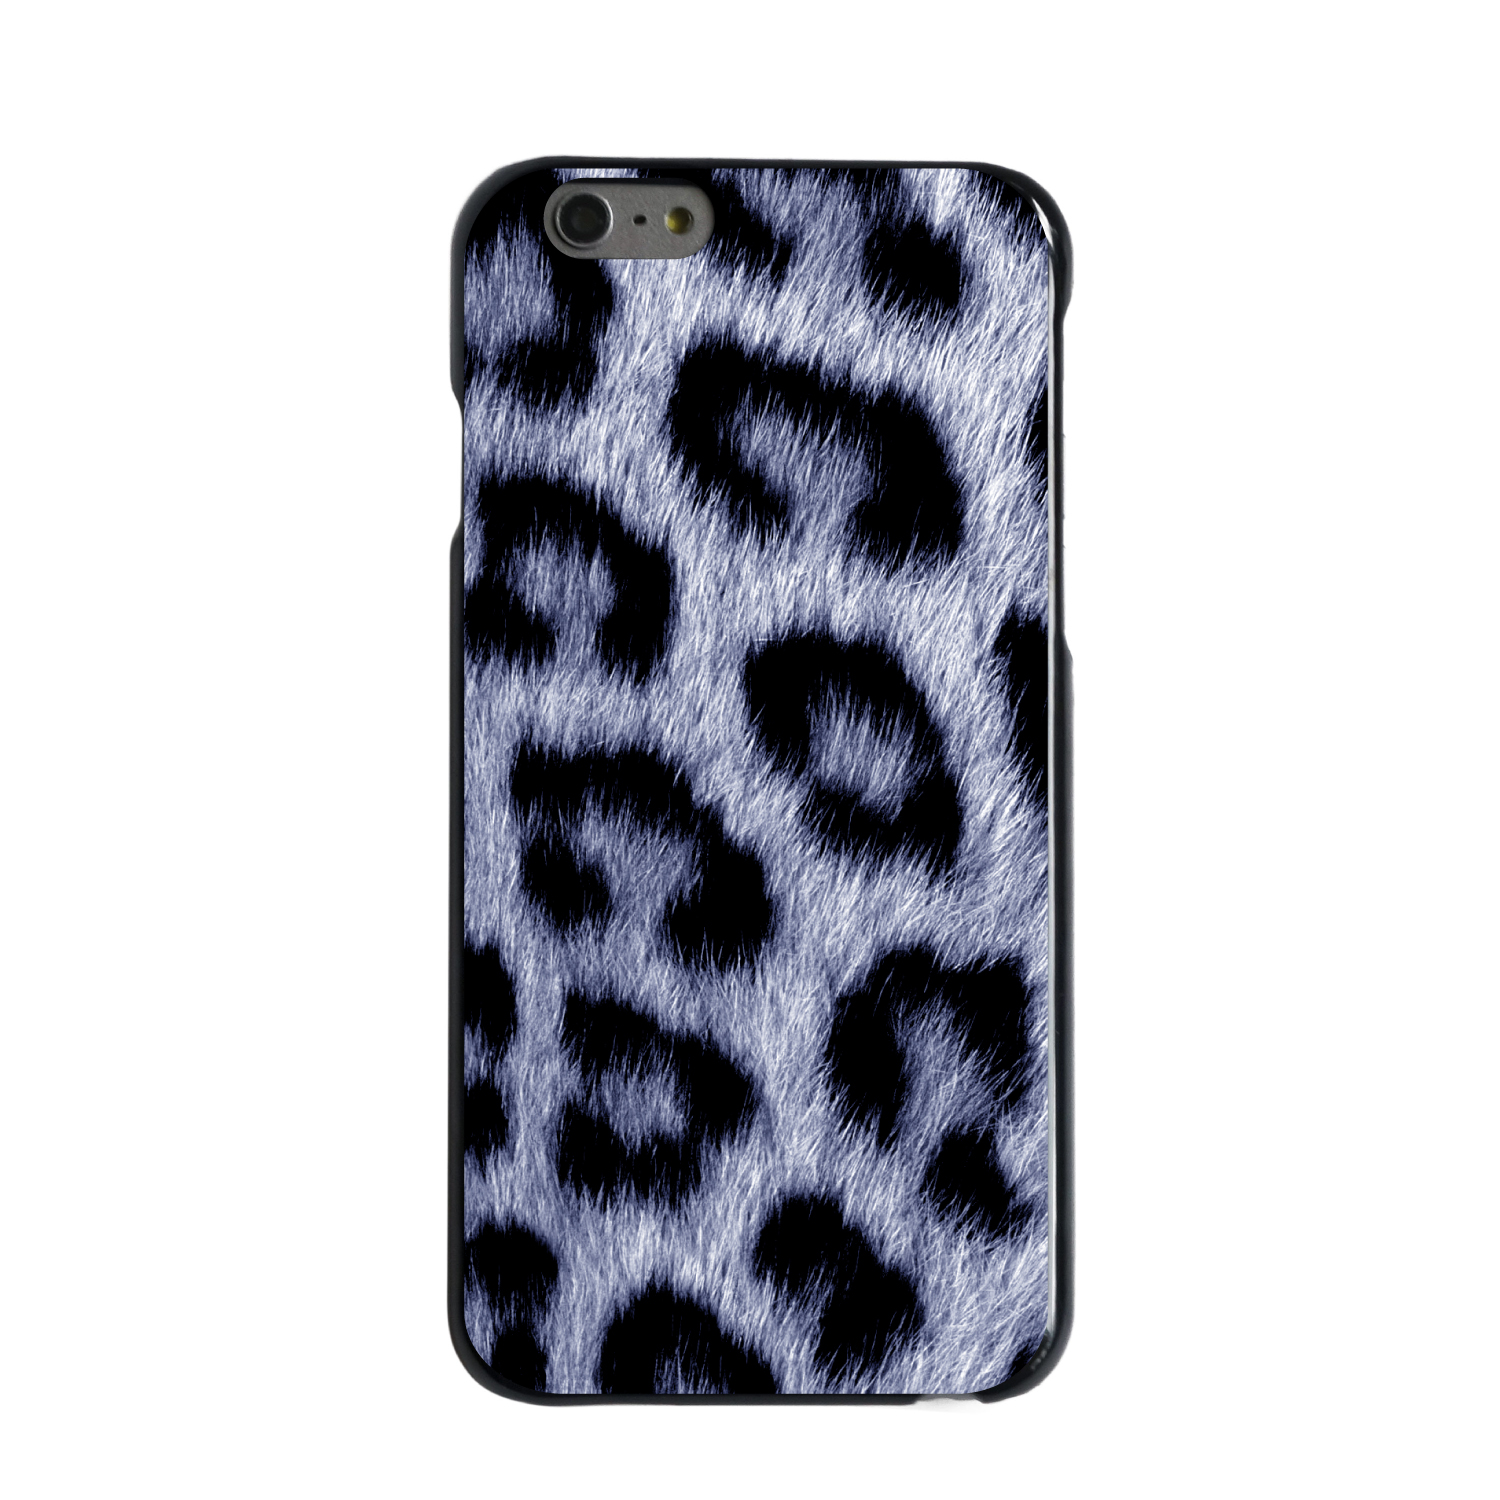 "CUSTOM Black Hard Plastic Snap-On Case for Apple iPhone 6 / 6S (4.7"" Screen) - Blue Black Leopard Fur Skin"